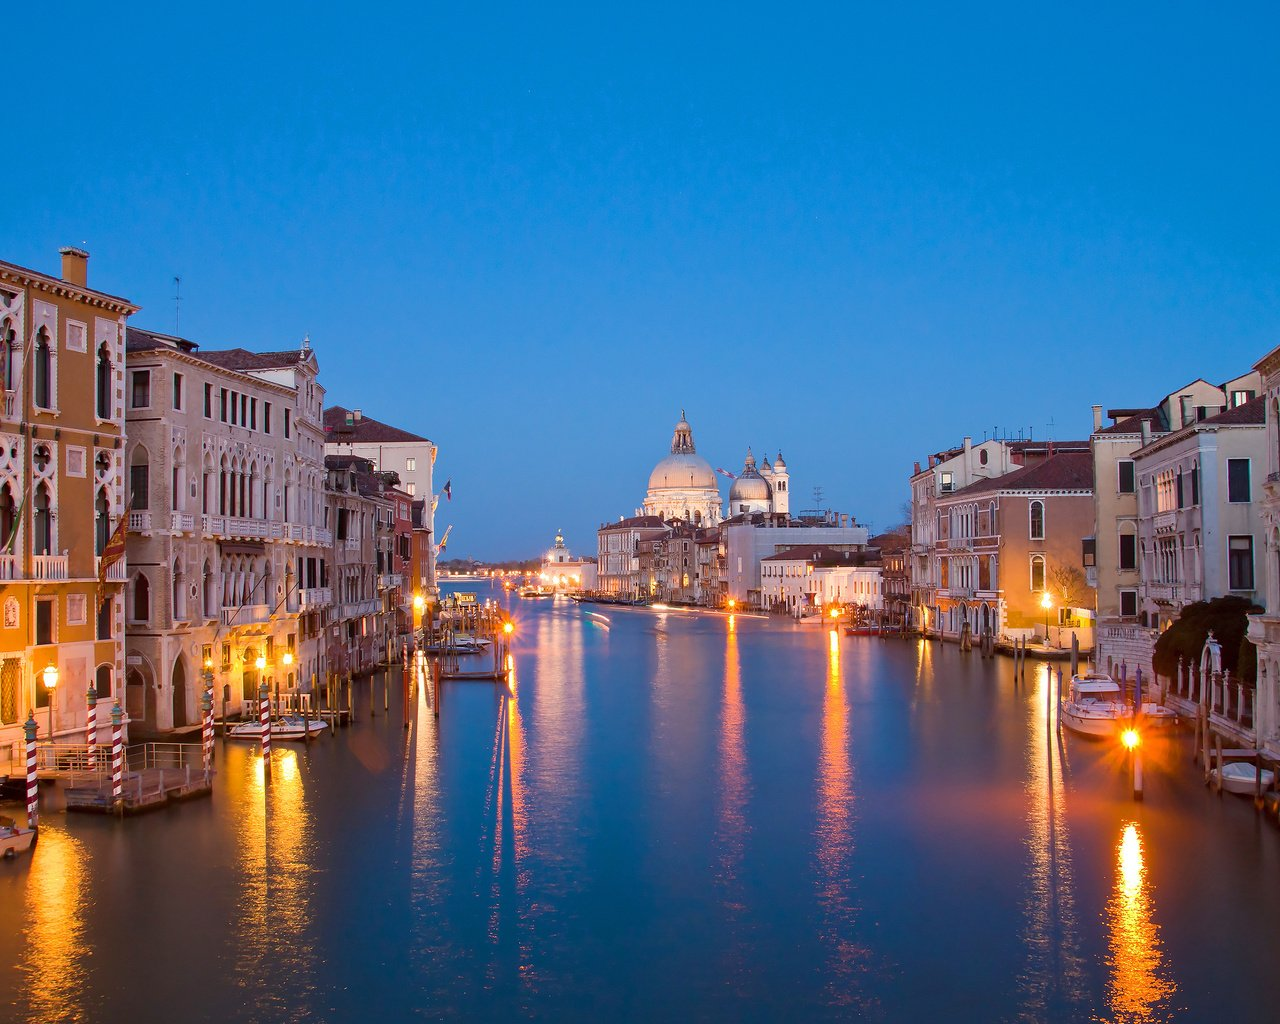 Обои огни, венеция, канал, италия, lights, venice, channel, italy разрешение 3700x2468 Загрузить